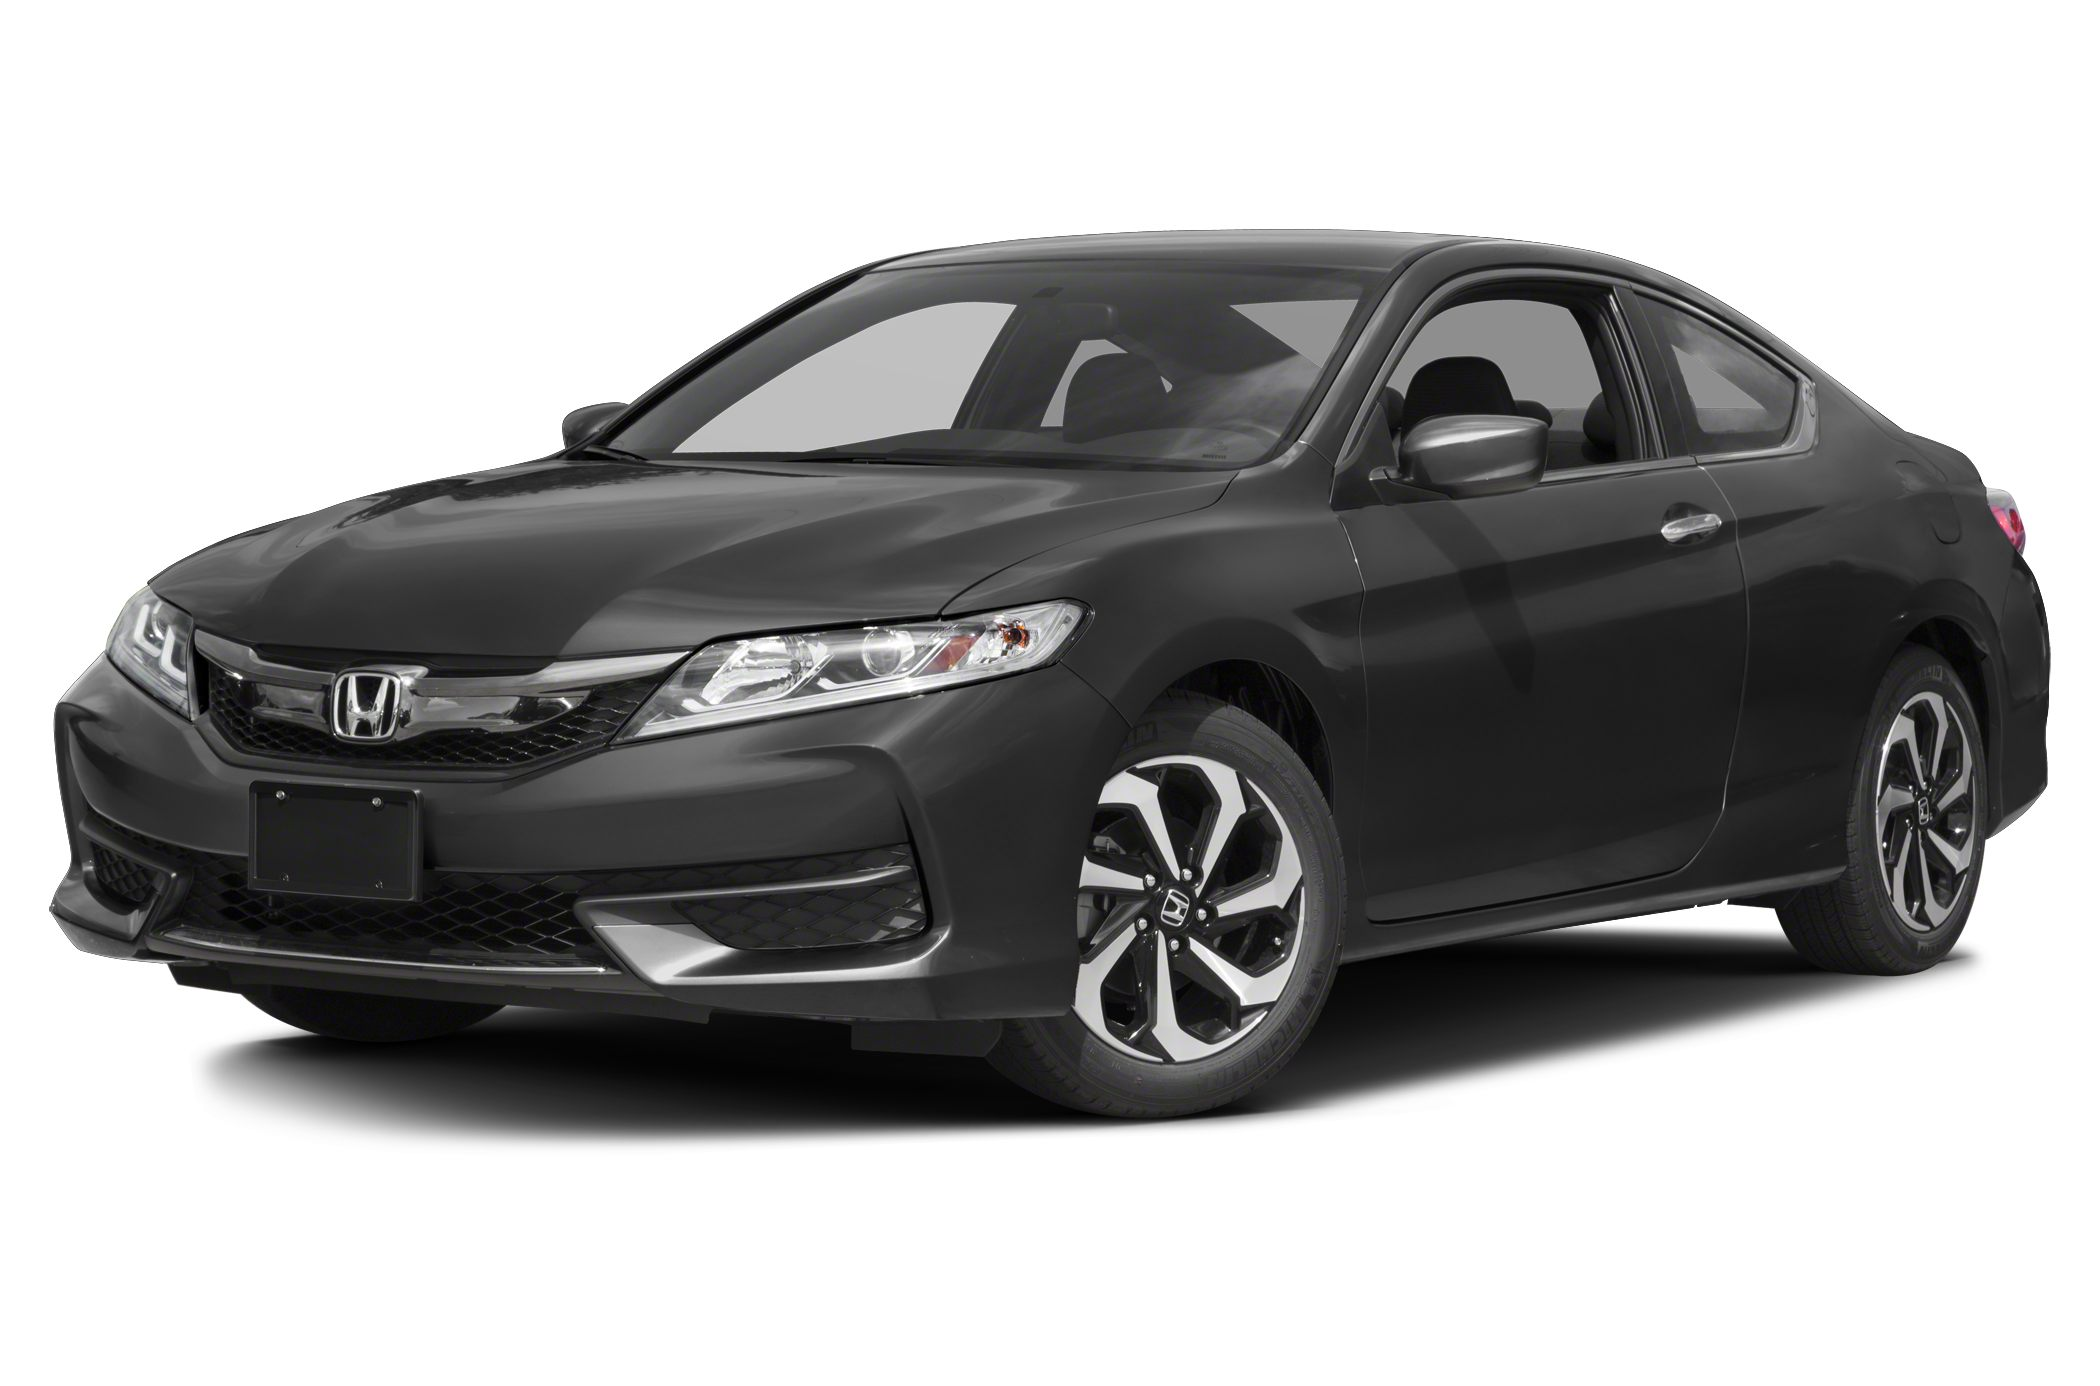 2017 Honda Accord LX-S 2dr Coupe